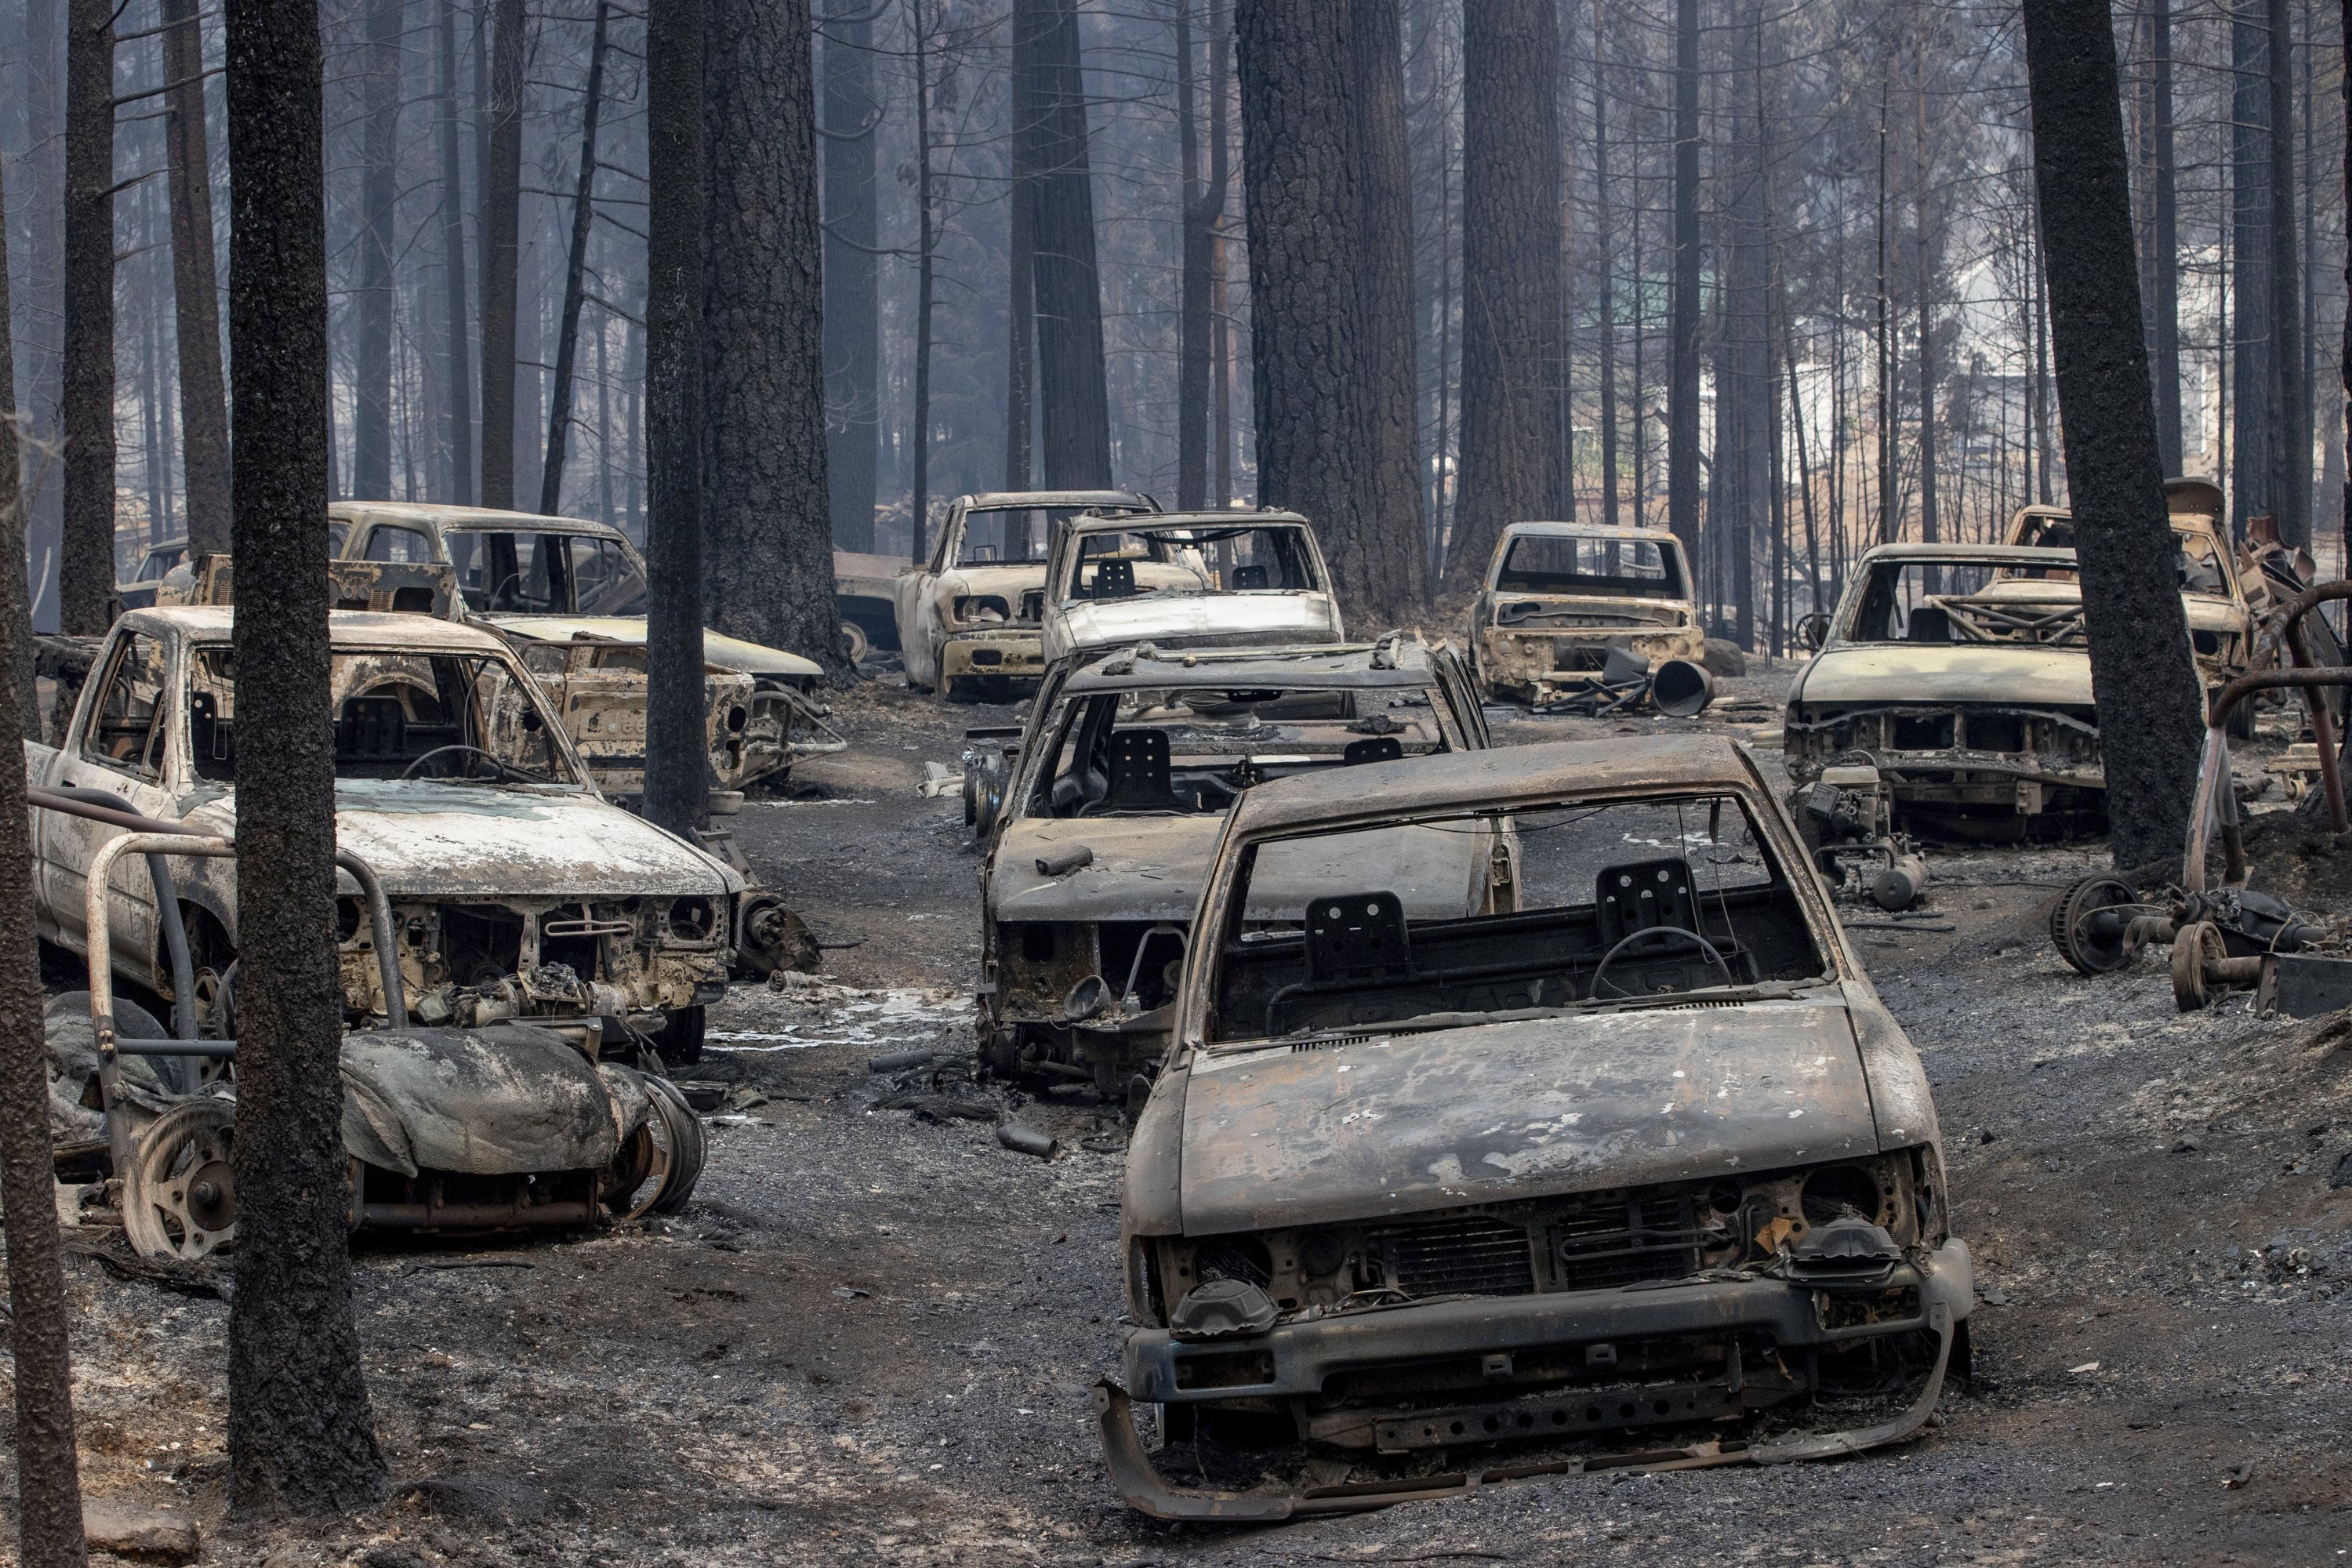 Scorched vehicles destroyed by the Caldor fire rest on Evergreen Drive in Grizzly Flats, California, U.S., Aug. 17, 2021. (AP Photo)